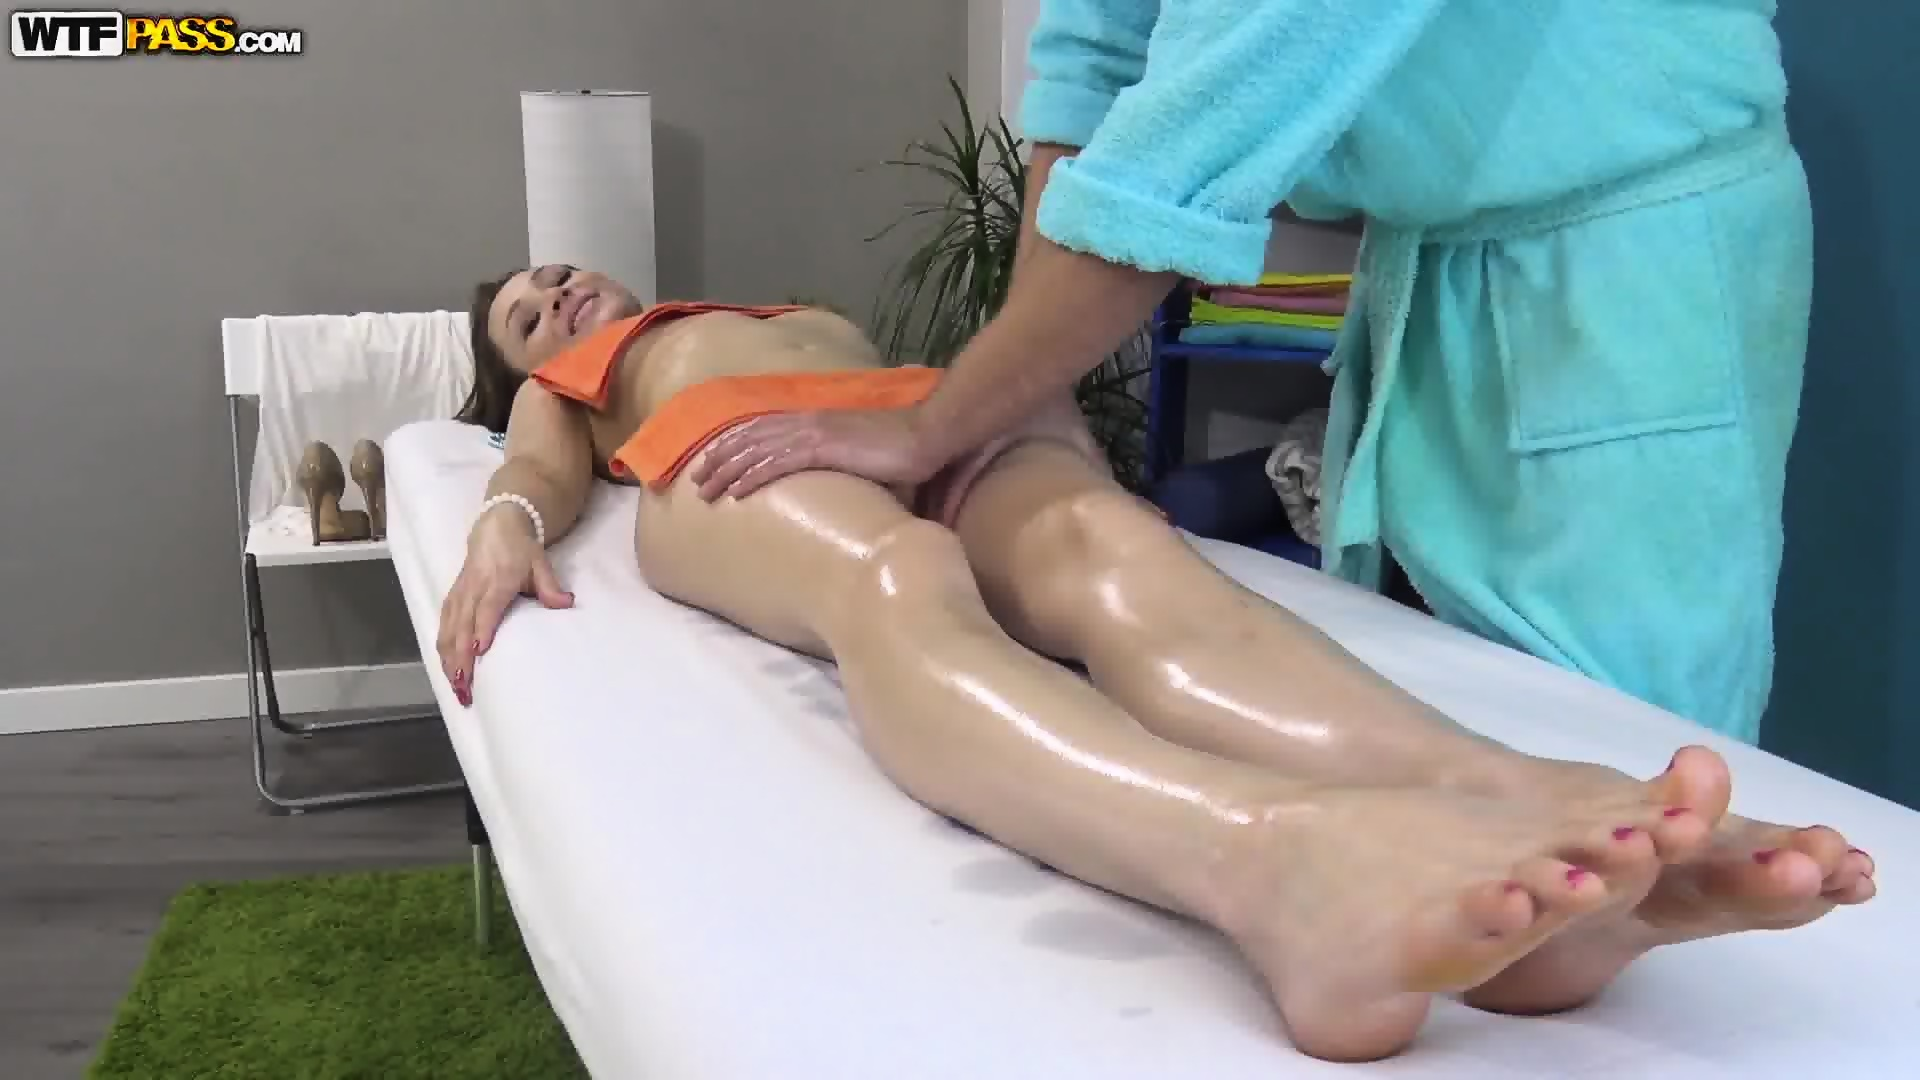 Sensual Massage Turns Into Nice Sex Scene 5